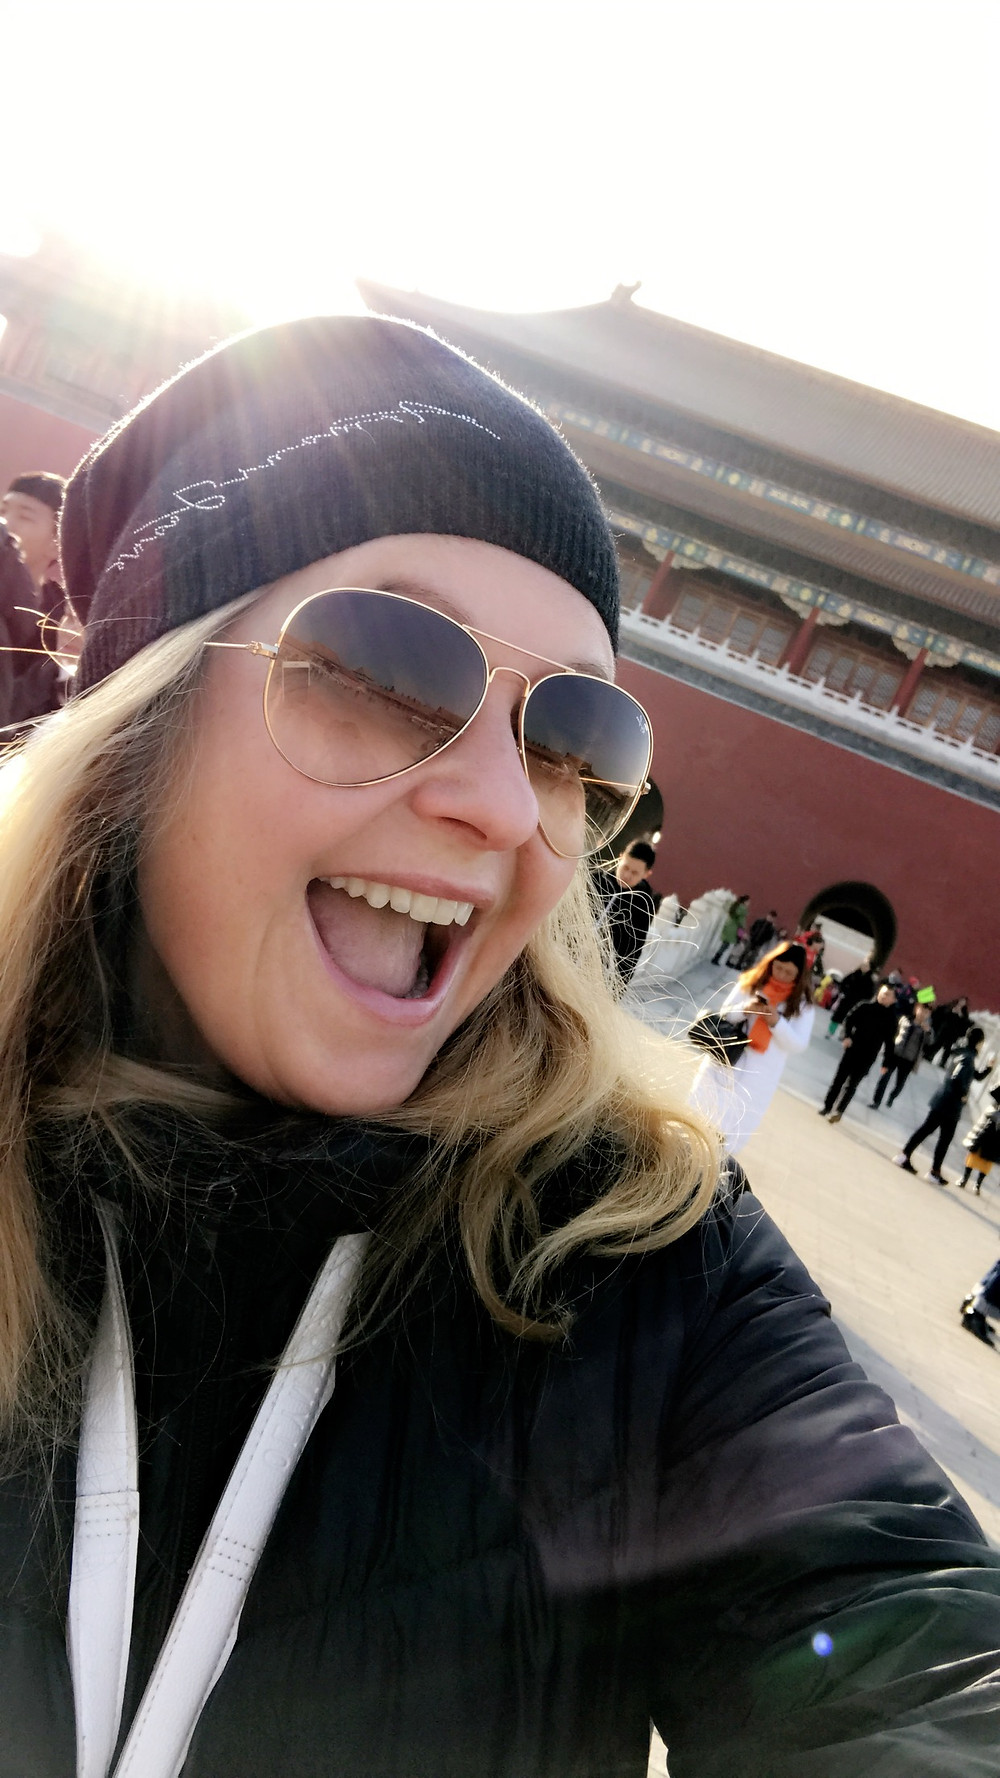 www.travelqueen.no in The forbidden city in Beijing, China